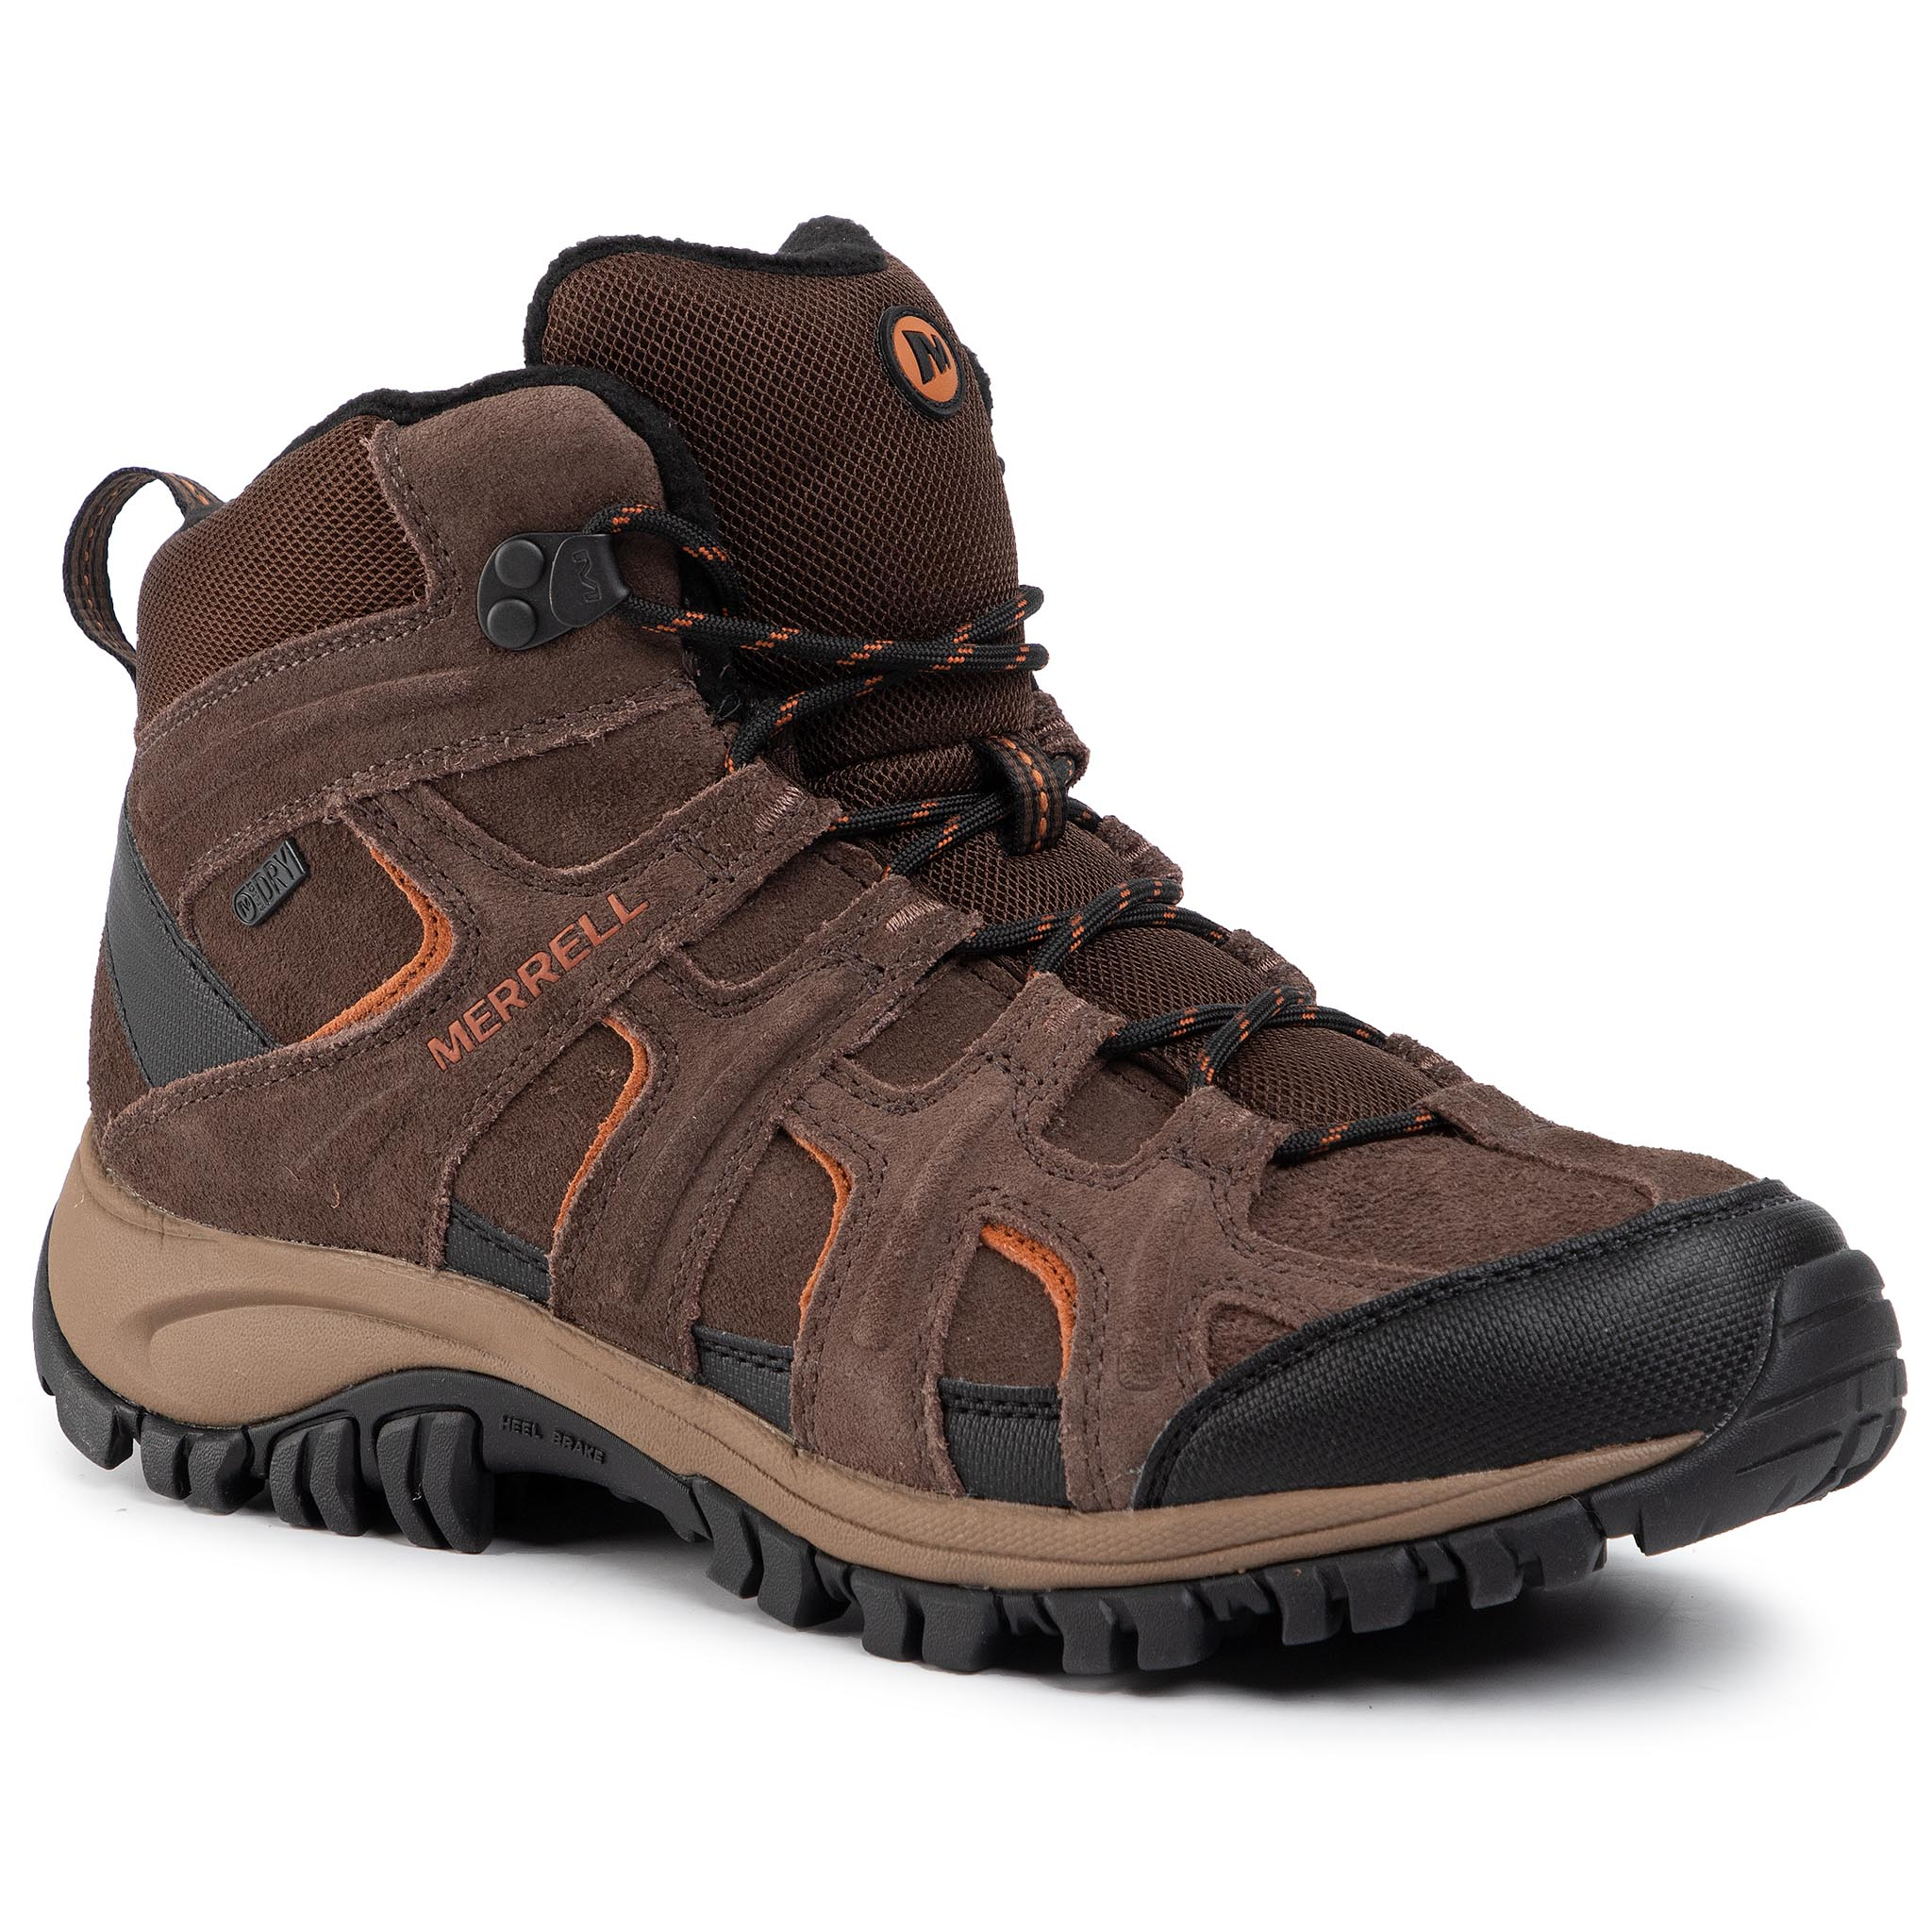 Trekkings Merrell - Phoenix 2 Mid Thermo Wp J46531 Bracken imagine epantofi.ro 2021